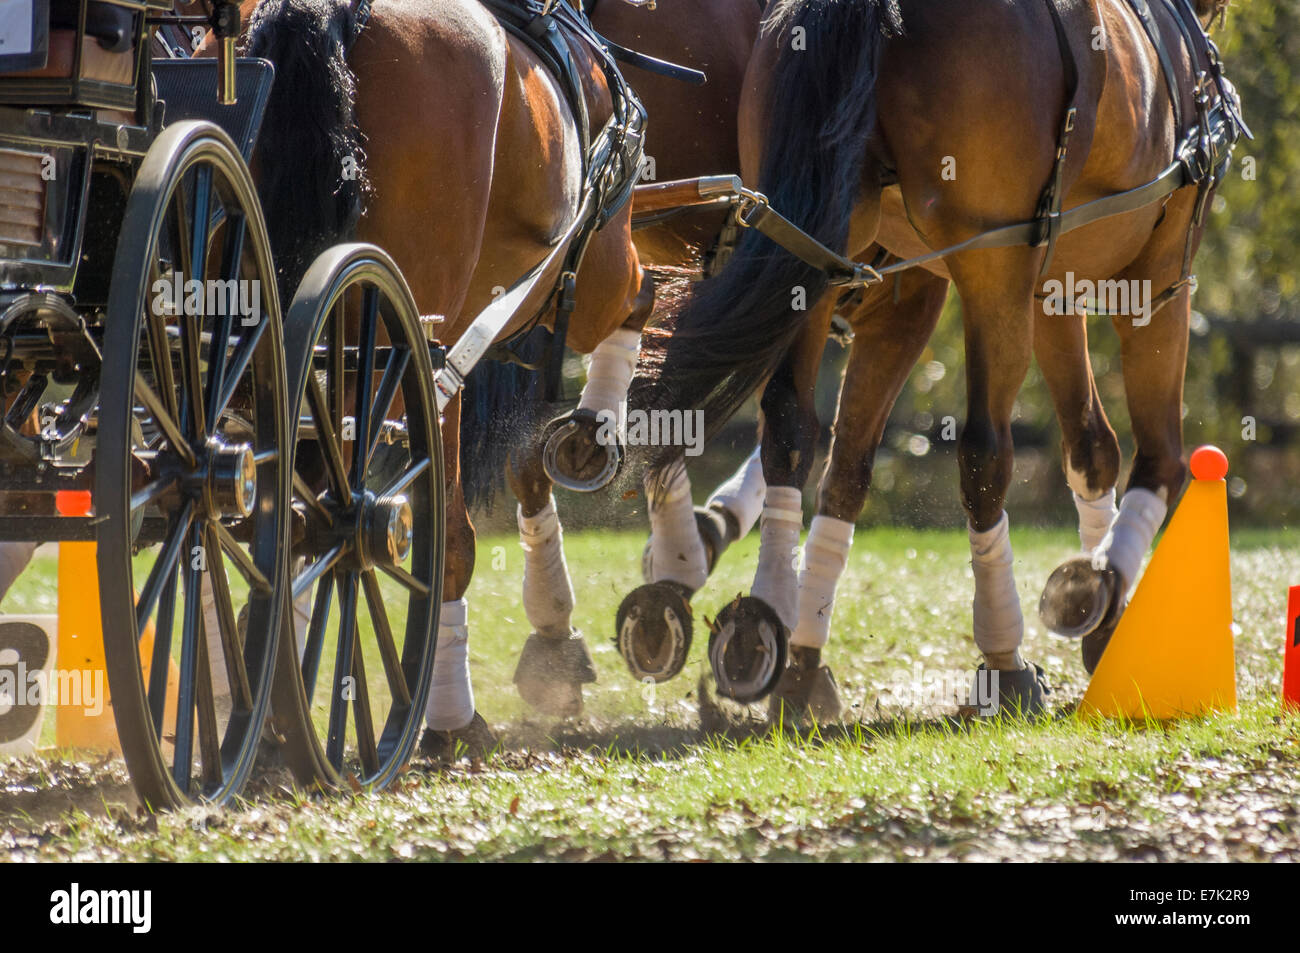 Team of horses pulling cart at combined driving competition - Stock Image